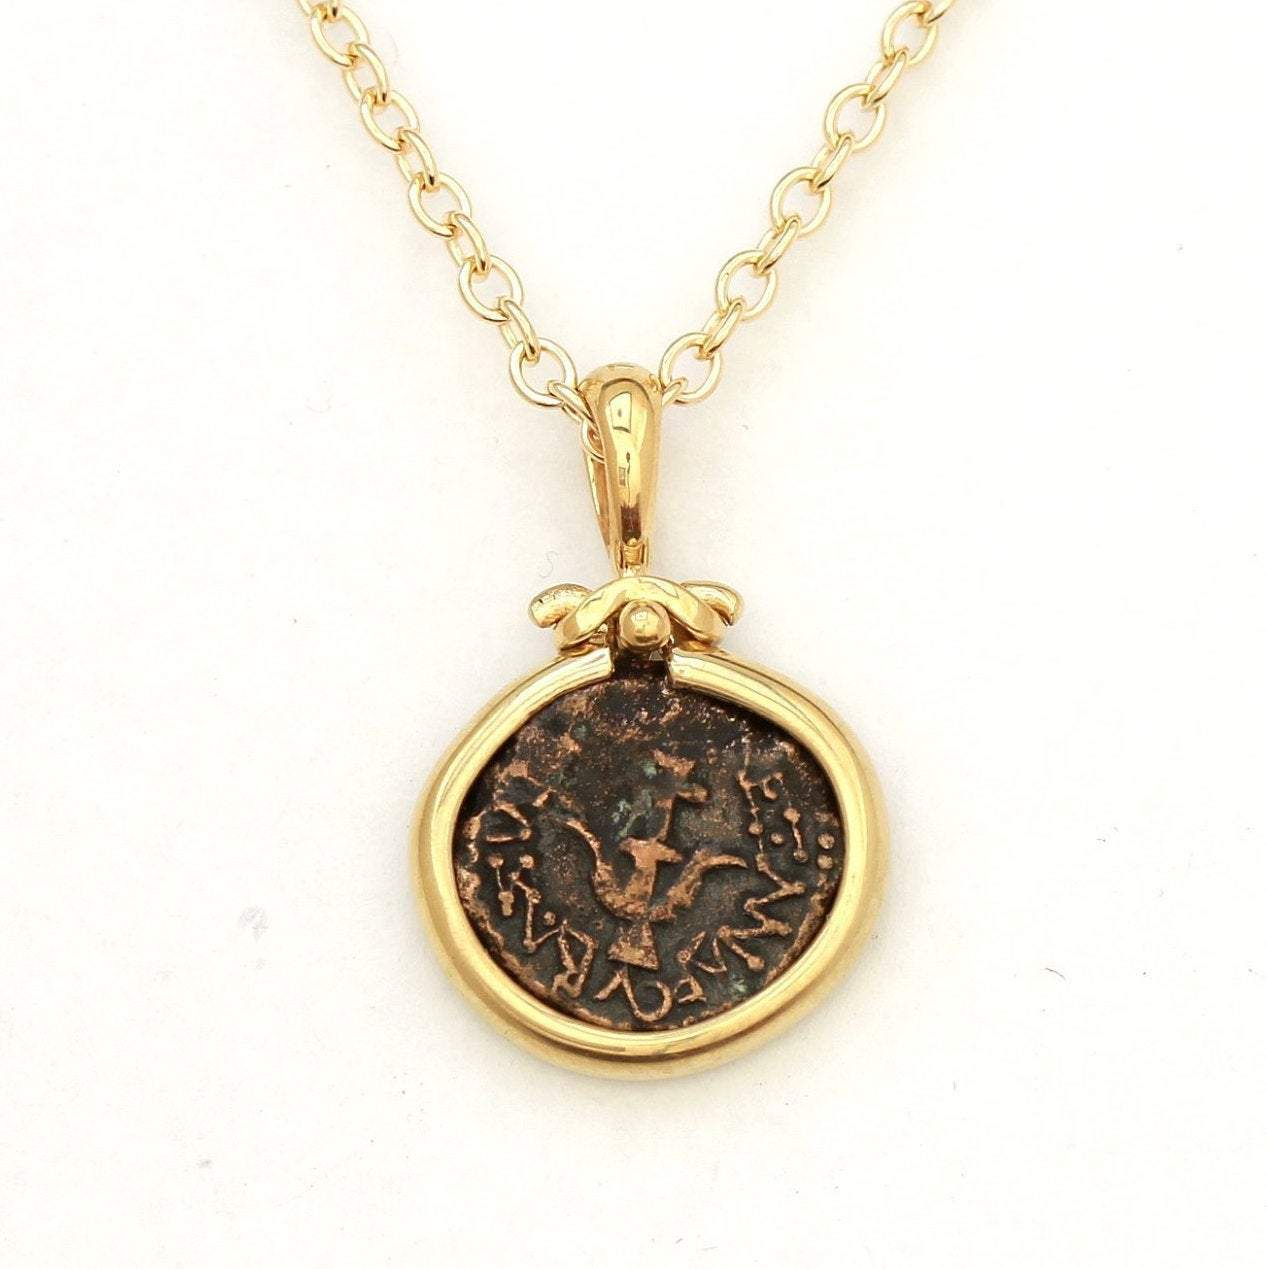 Widows Mite, 18K Gold Pendant, Genuine Ancient Coin, with Certificate8048 - Erez Ancient Coin Jewelry, ancient coin jewelry, men jewelry, genuine ancient coins, made in the US